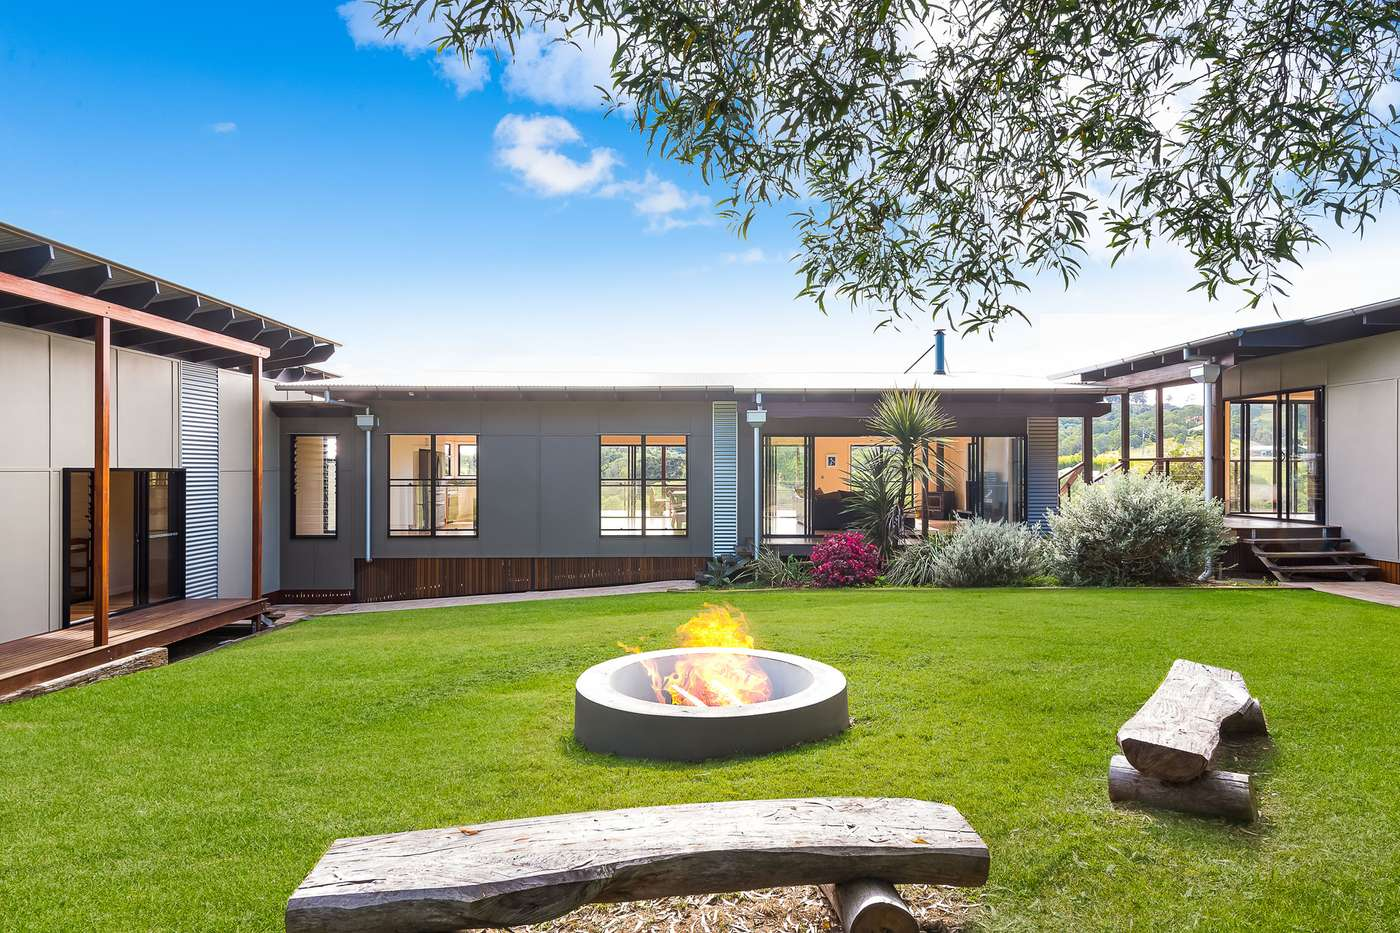 Main view of Homely house listing, 62 Hills Road, Closeburn, QLD 4520